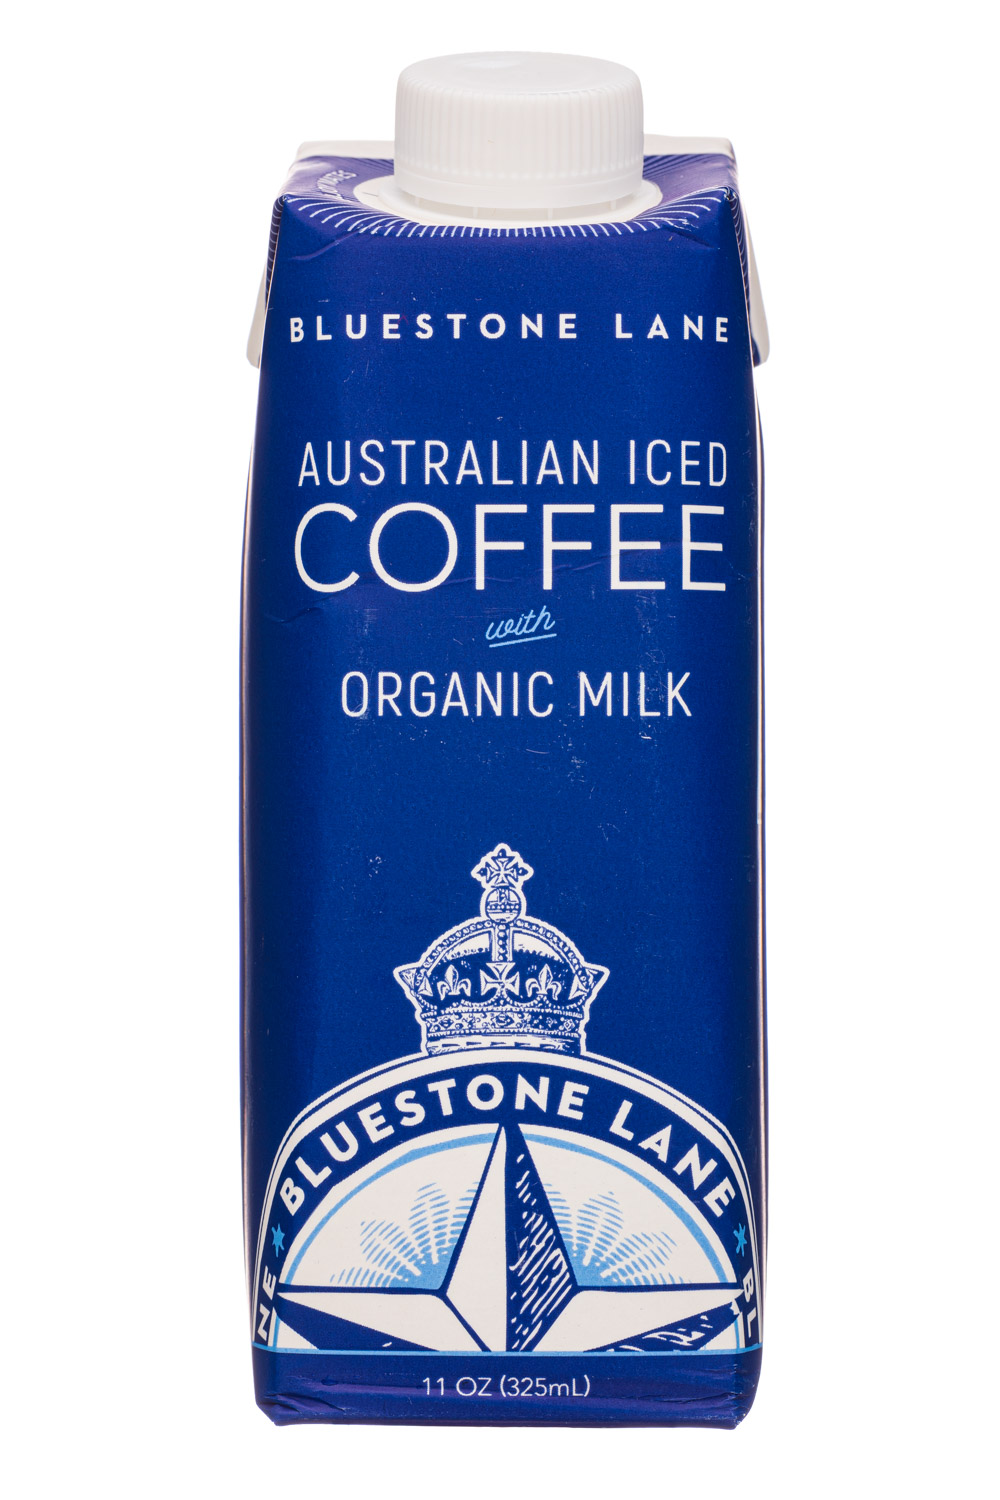 Bluestone Lane: BluestoneLane-11oz-AustralianIcedCoffee-Milk-Front